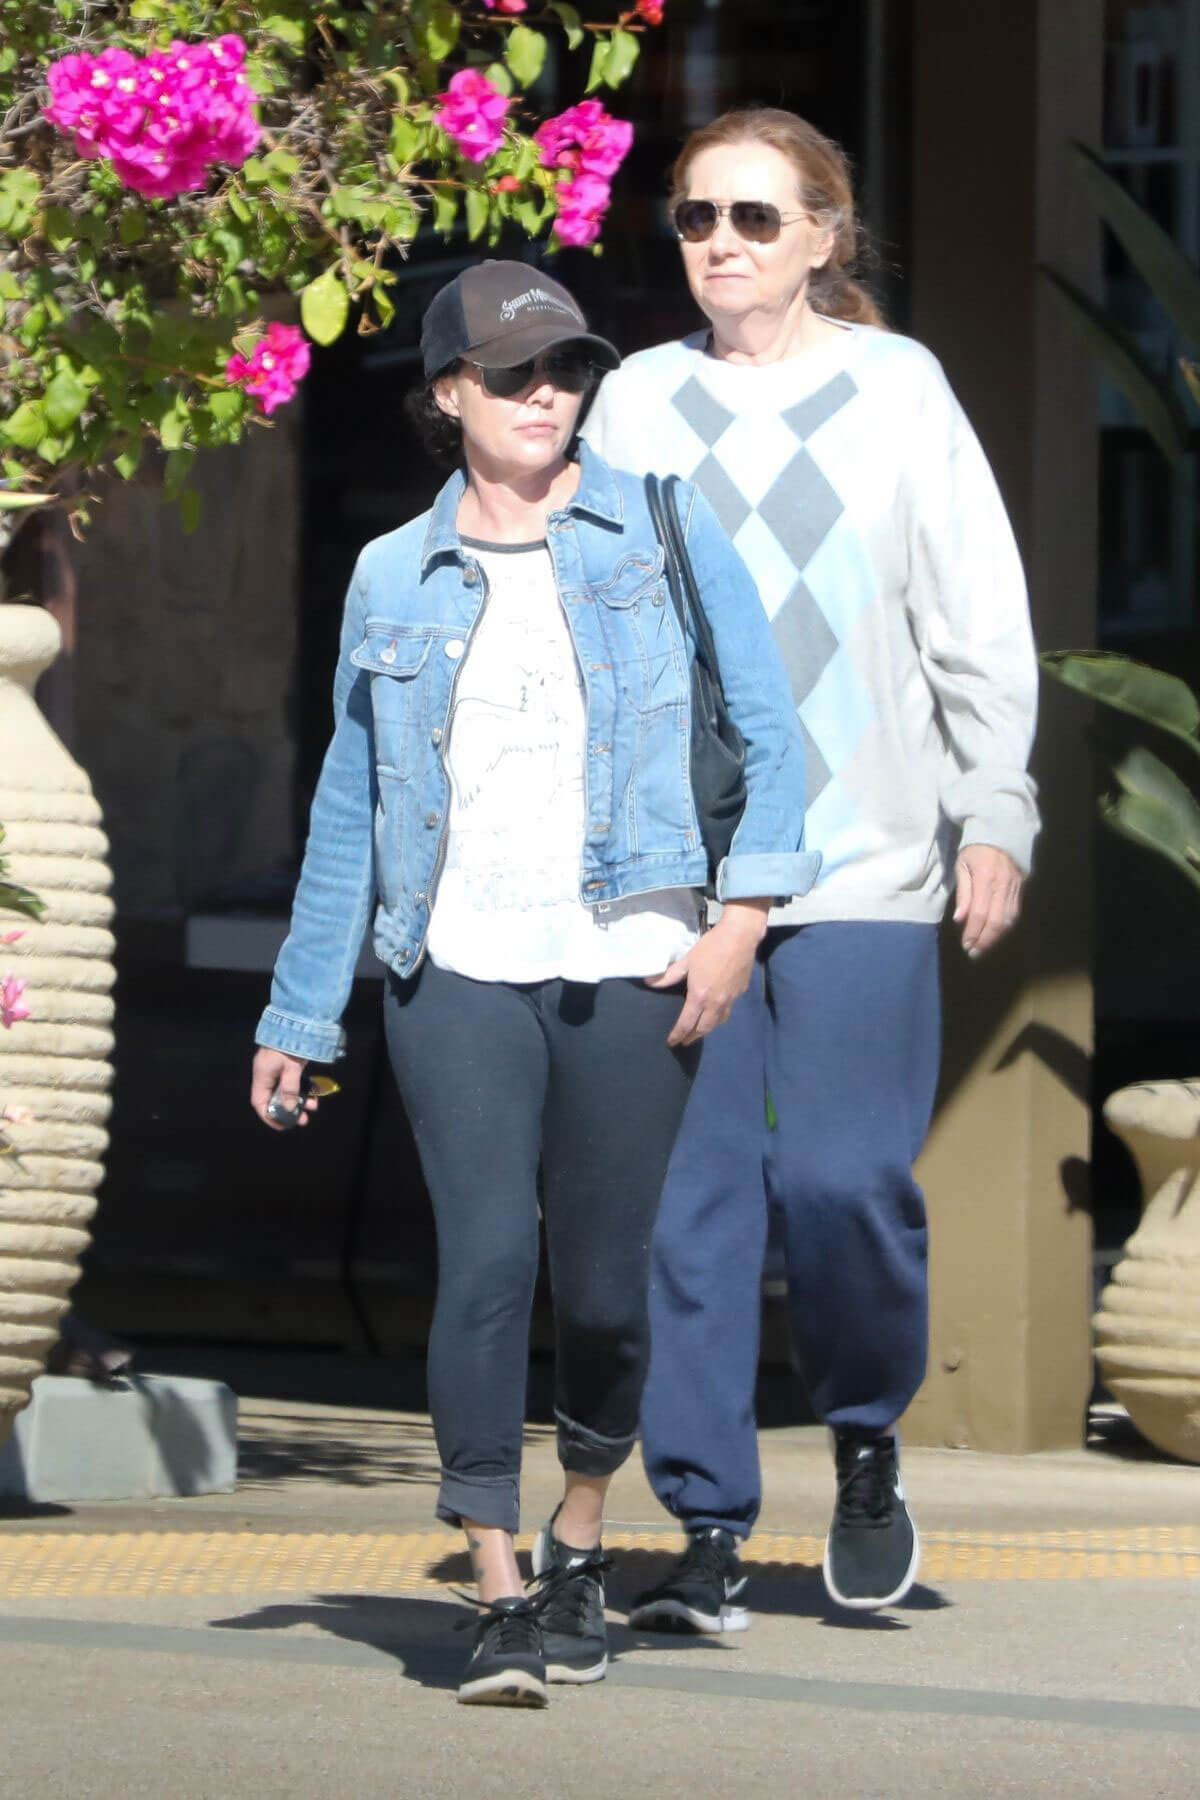 Shannen Doherty Stills Out for Lunch with Her Mom in Malibu